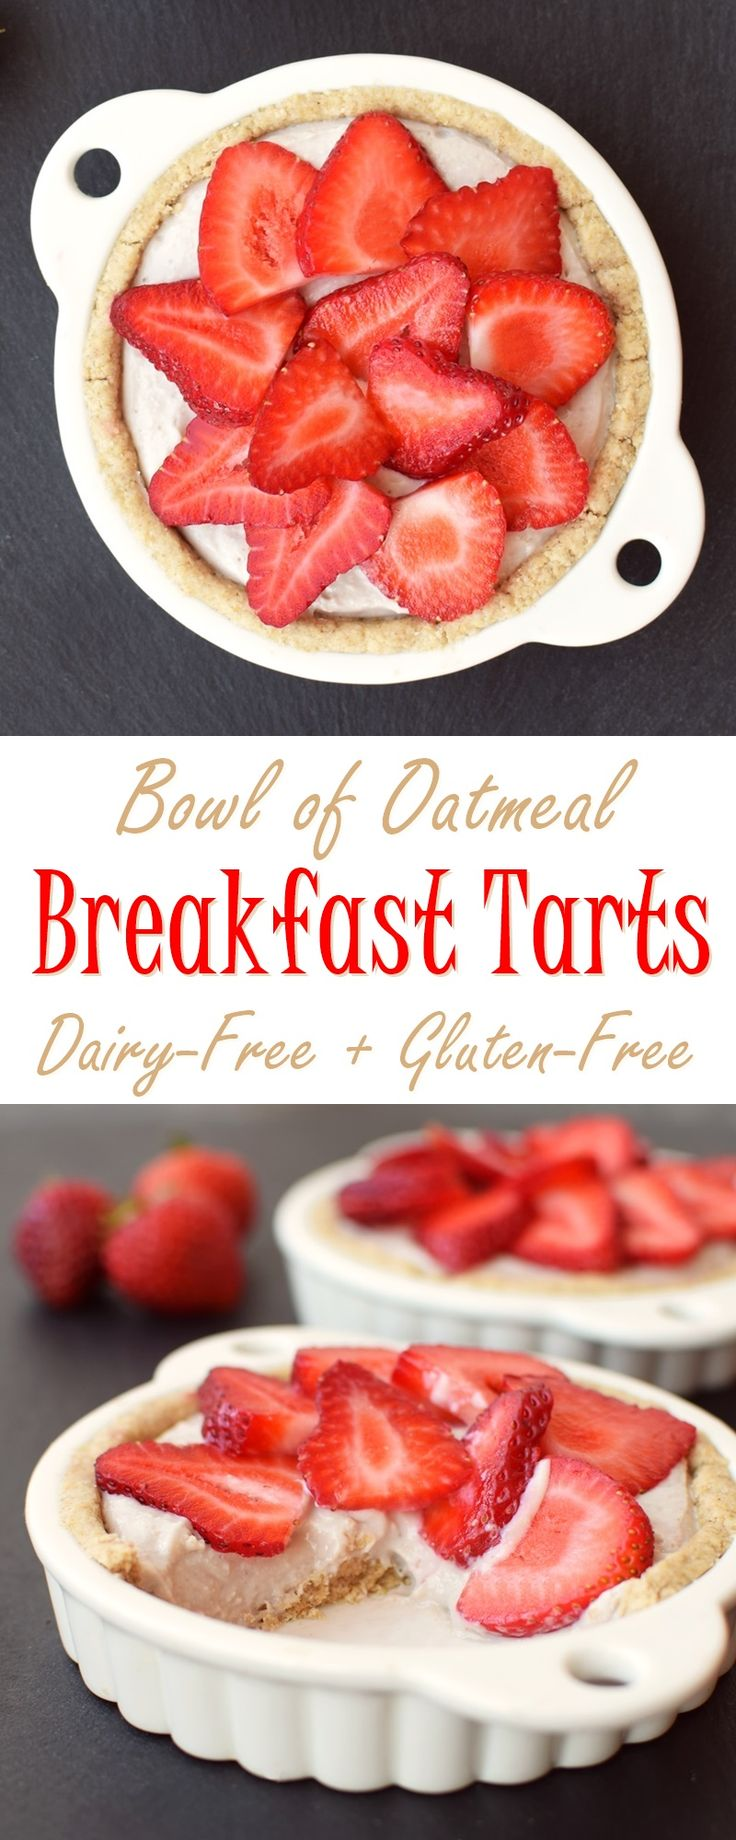 "Dairy Free Breakfast Tarts Recipe - ""Bowl of Oatmeal"" Crust with Creamy Fruit Filling (naturally healthy, gluten-free and plant-based) #doplants @lovemysilk make-ahead recipe!"